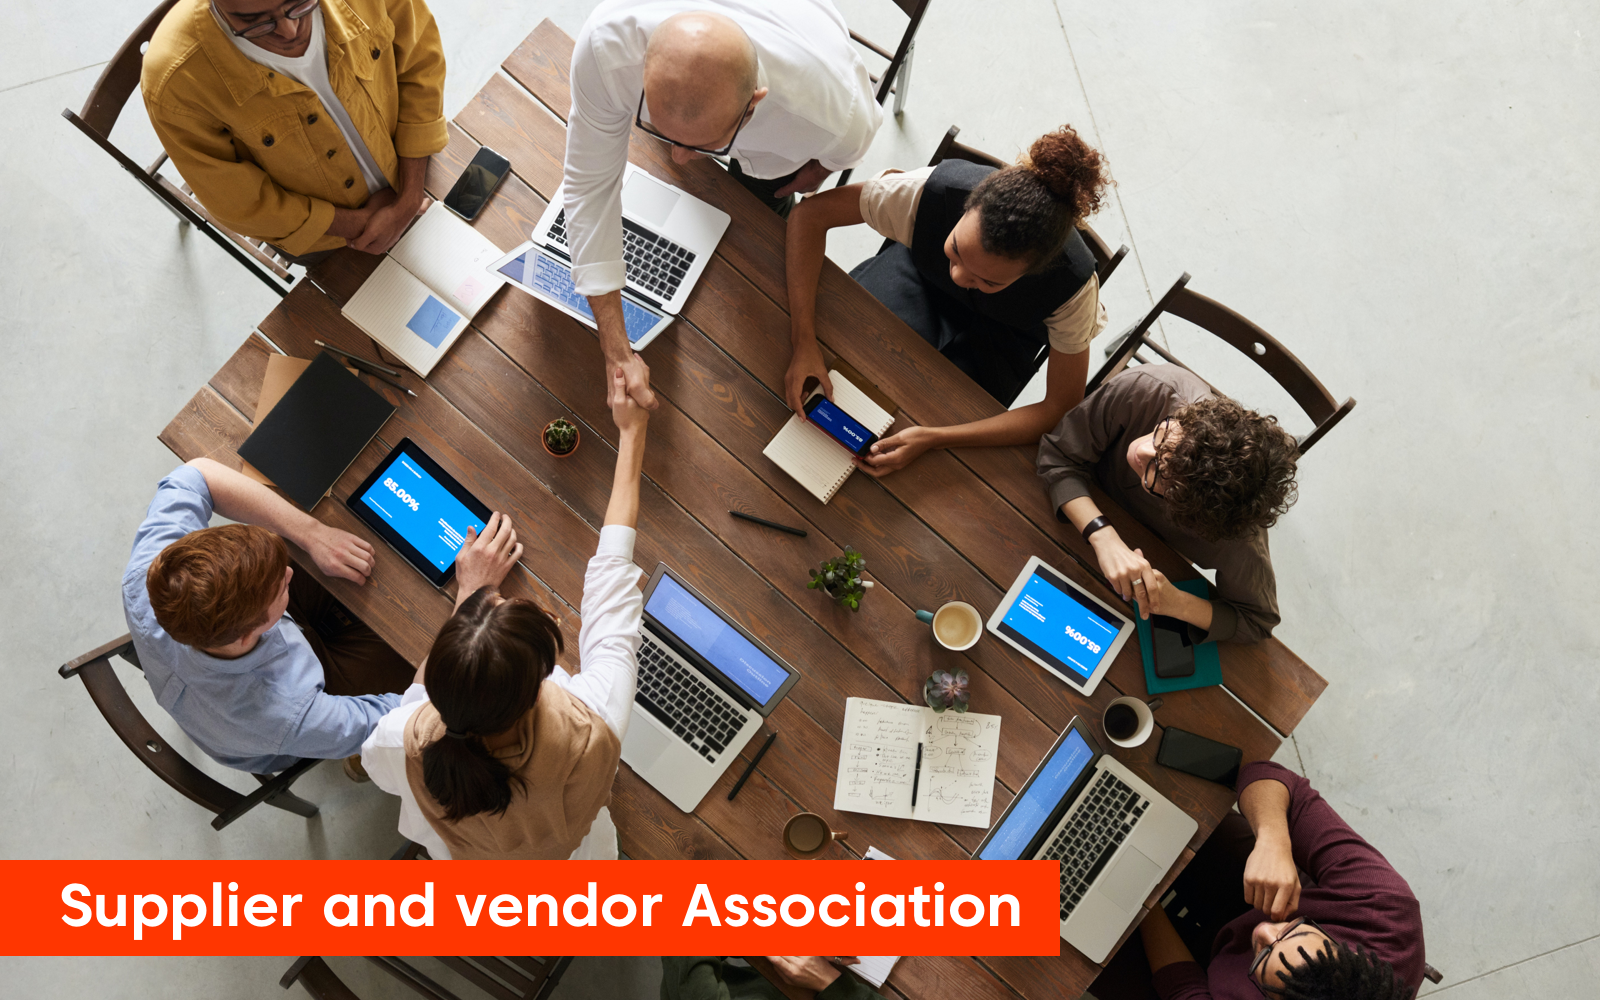 Supplier and vendor Association - Role of Business Intelligence in Supply Chain